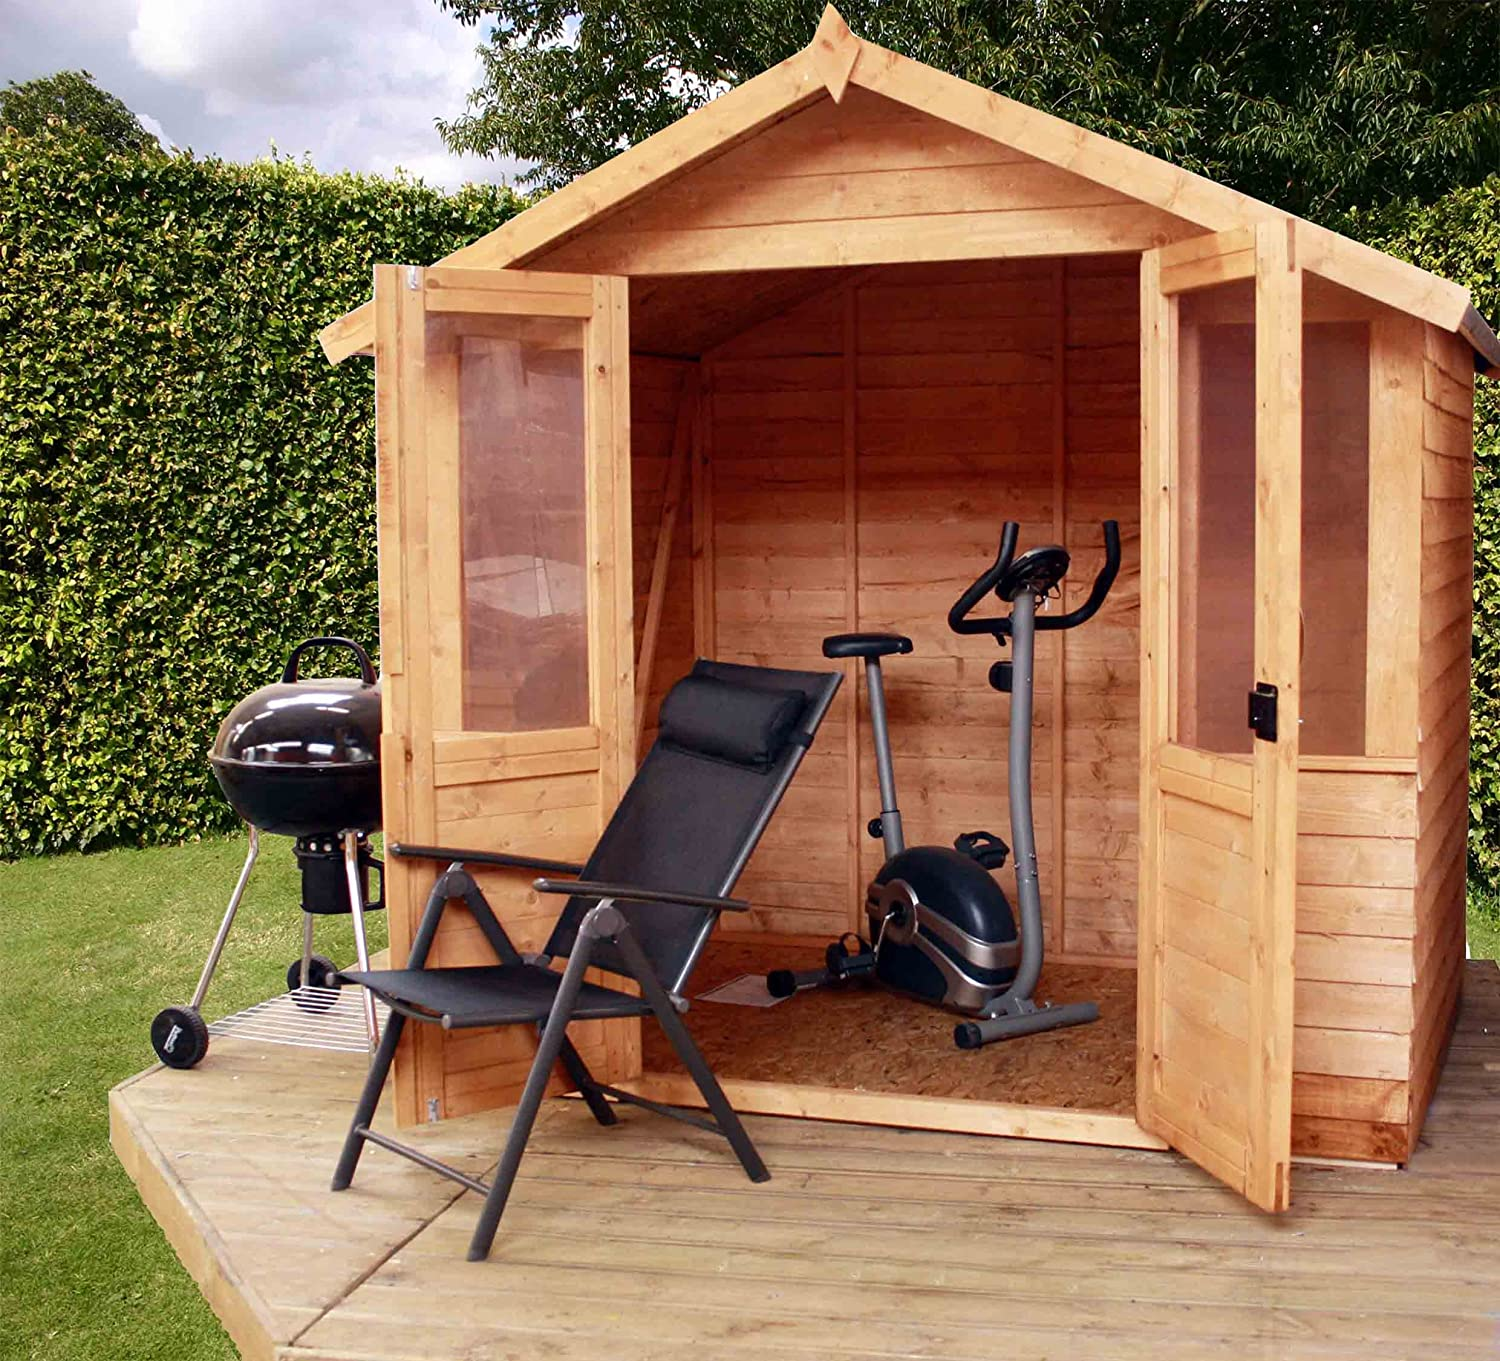 7 X 5 Overlap Traditional Summerhouse Summerhouse Wooden Summer House Shed  Outdoor Building From Buttercup Farm Amazoncouk Garden Outdoors